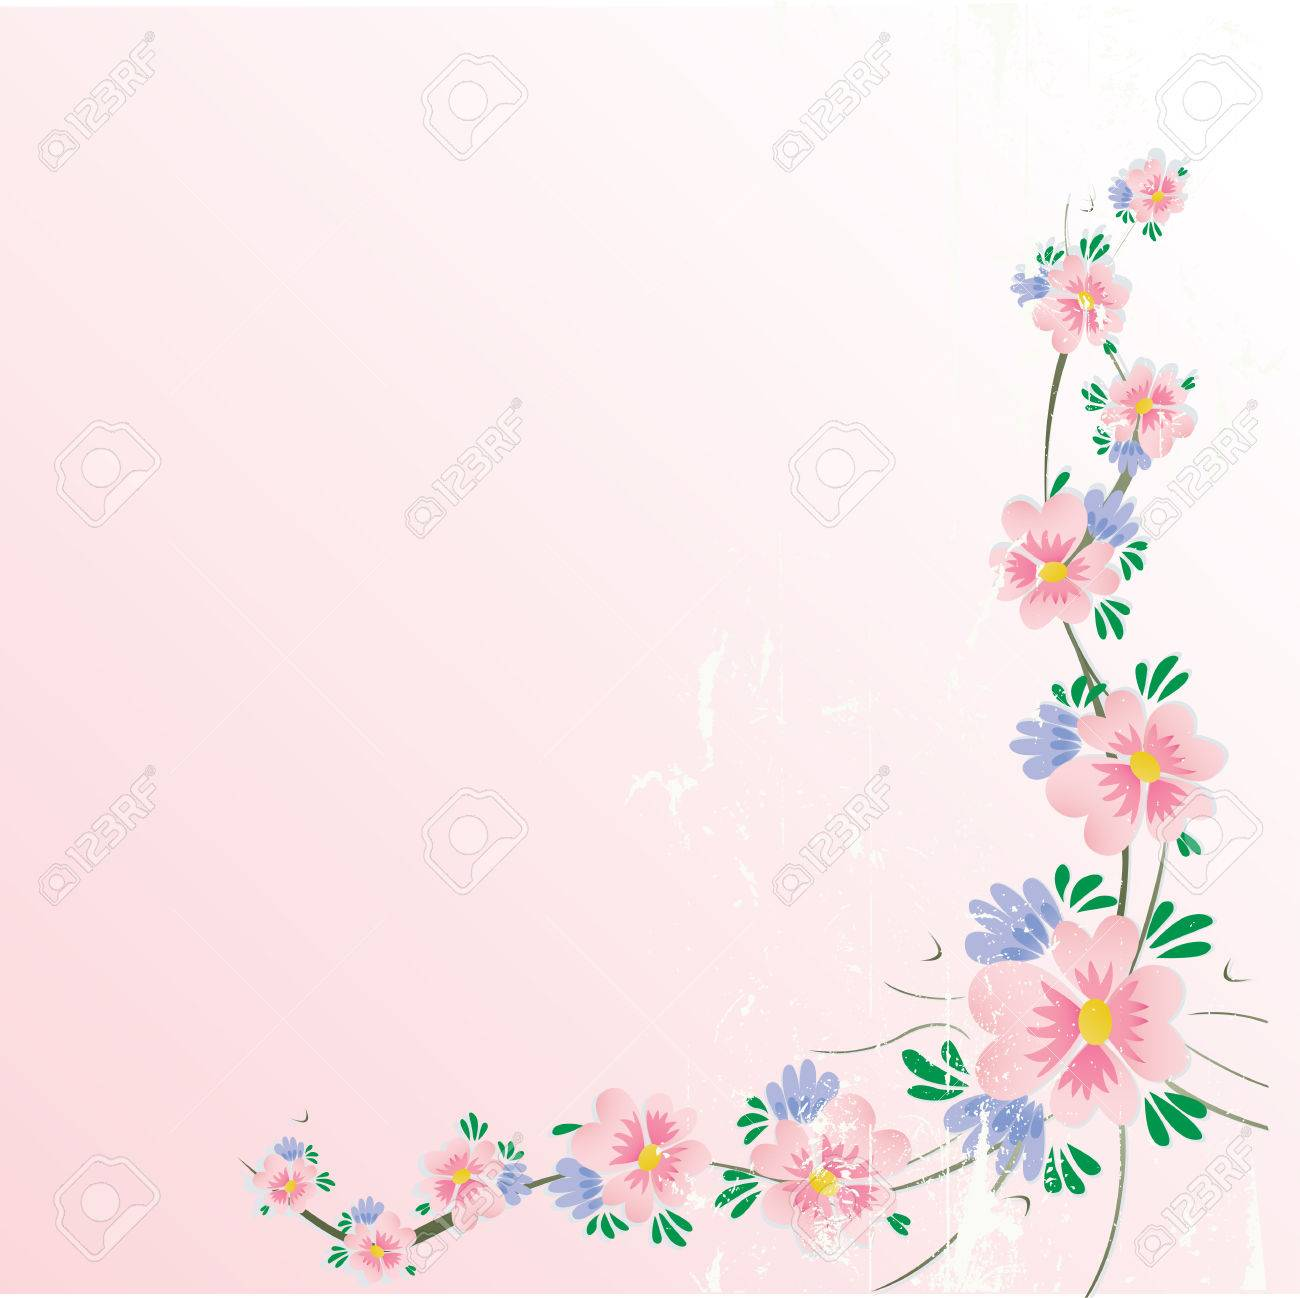 floral cherry blossom corner background with grunge effect Stock Vector - 4792224